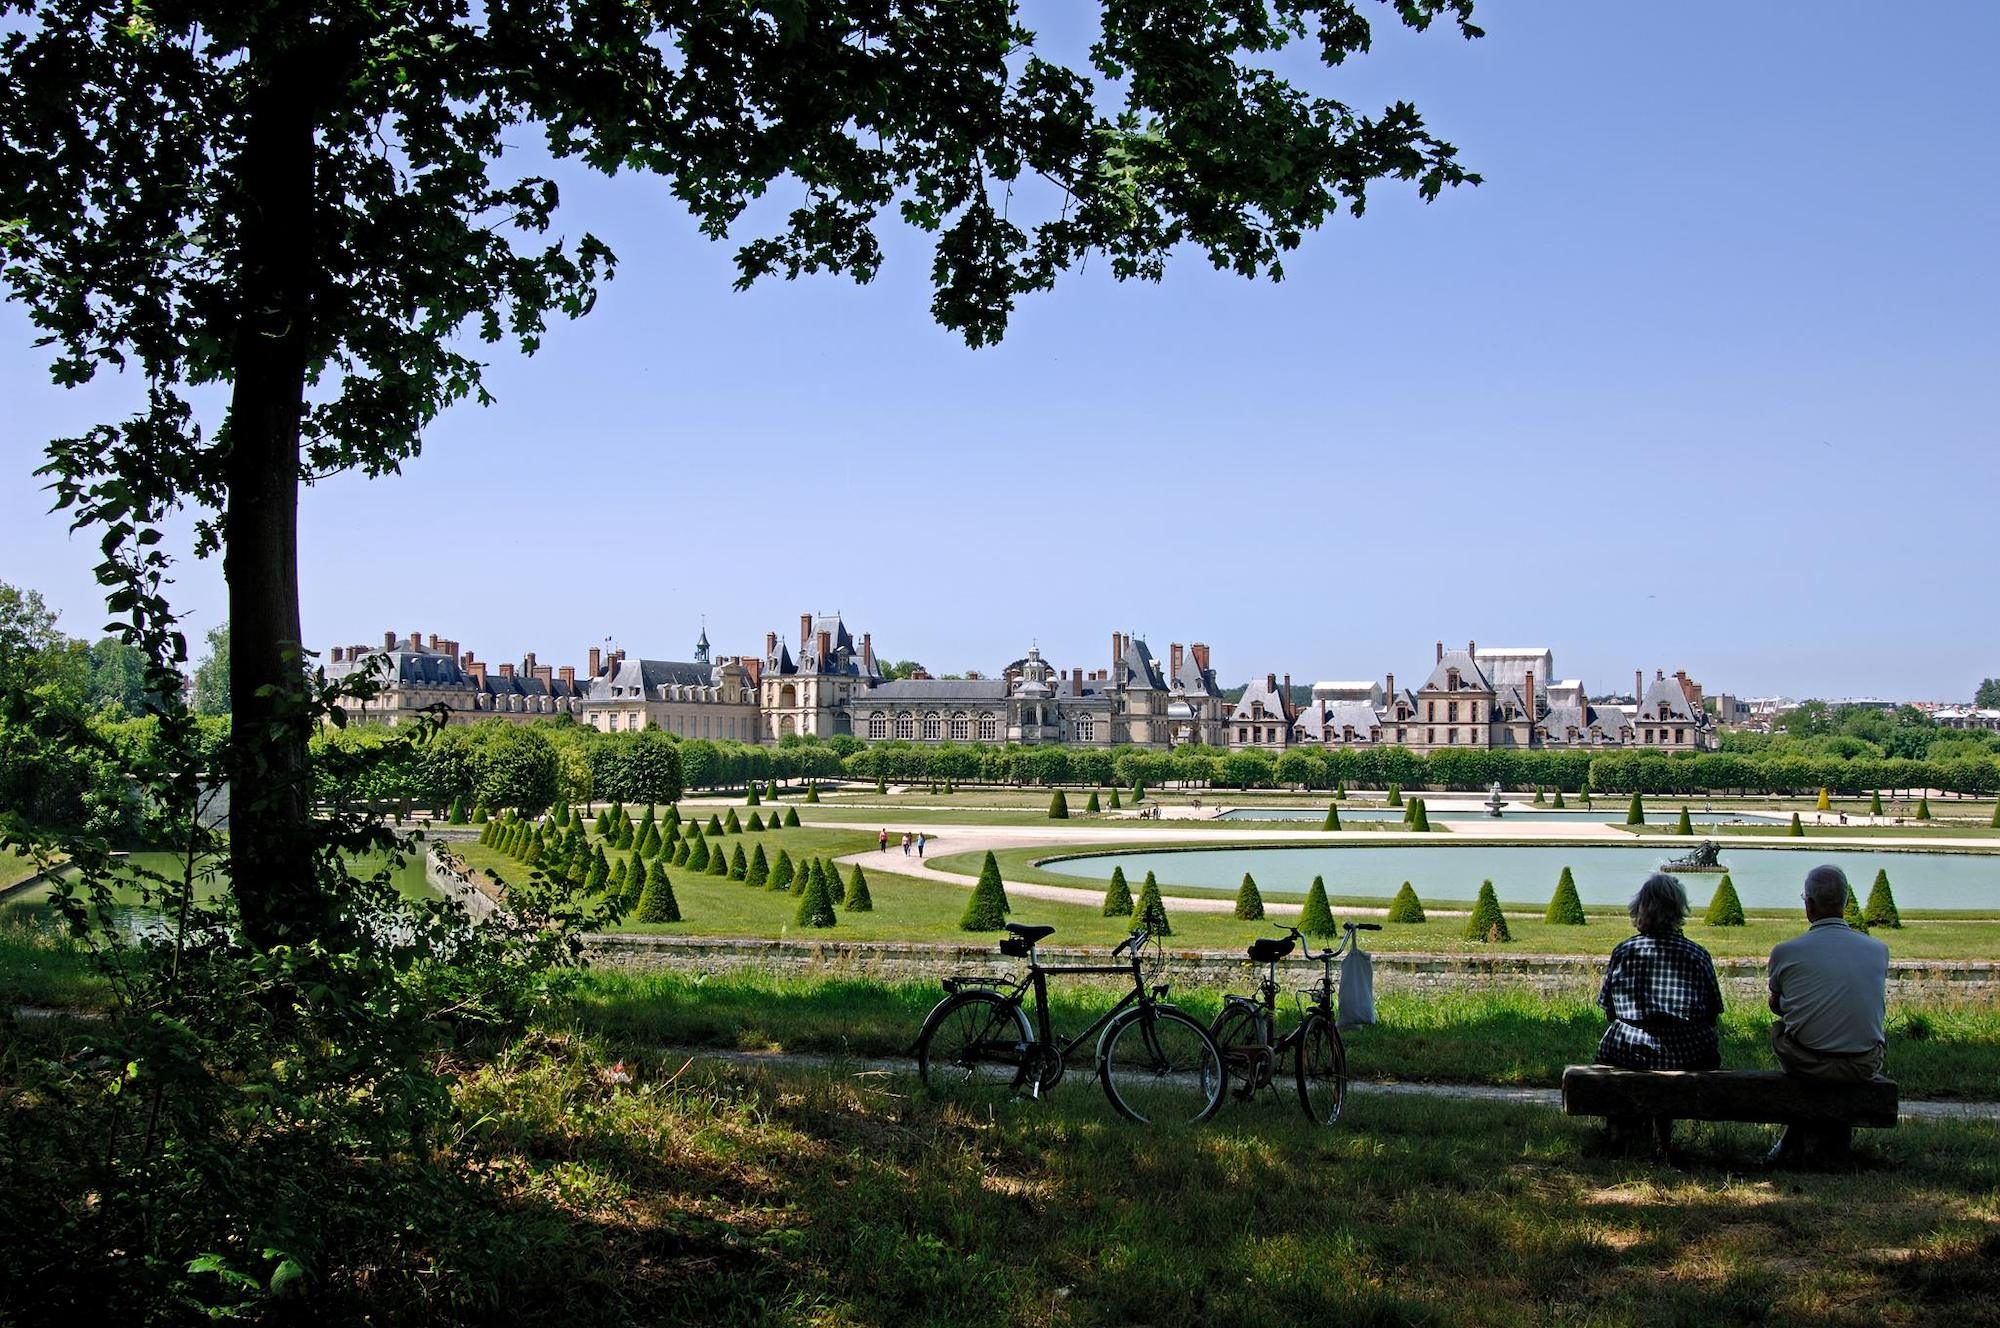 A view of the Château de Fontainebleau from the park, two people have parked their bikes and are admiring the view while sitting on a bench.